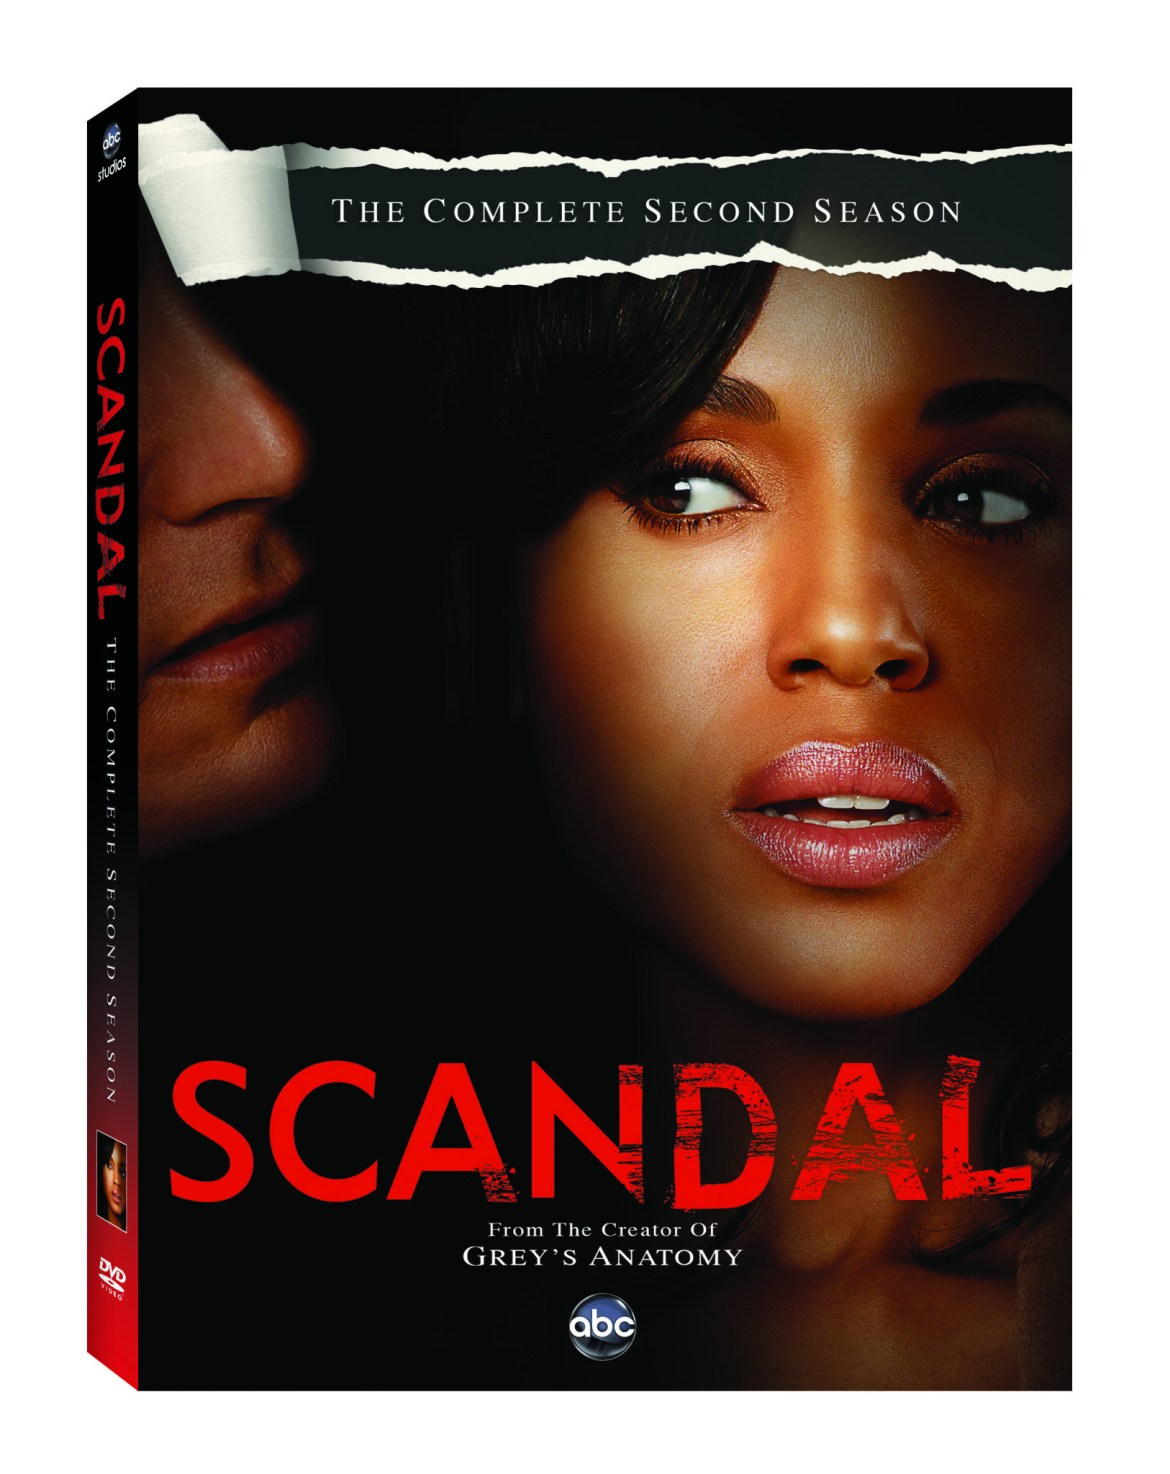 Scandal: The Complete Second Season comes to DVD September 3, 2013